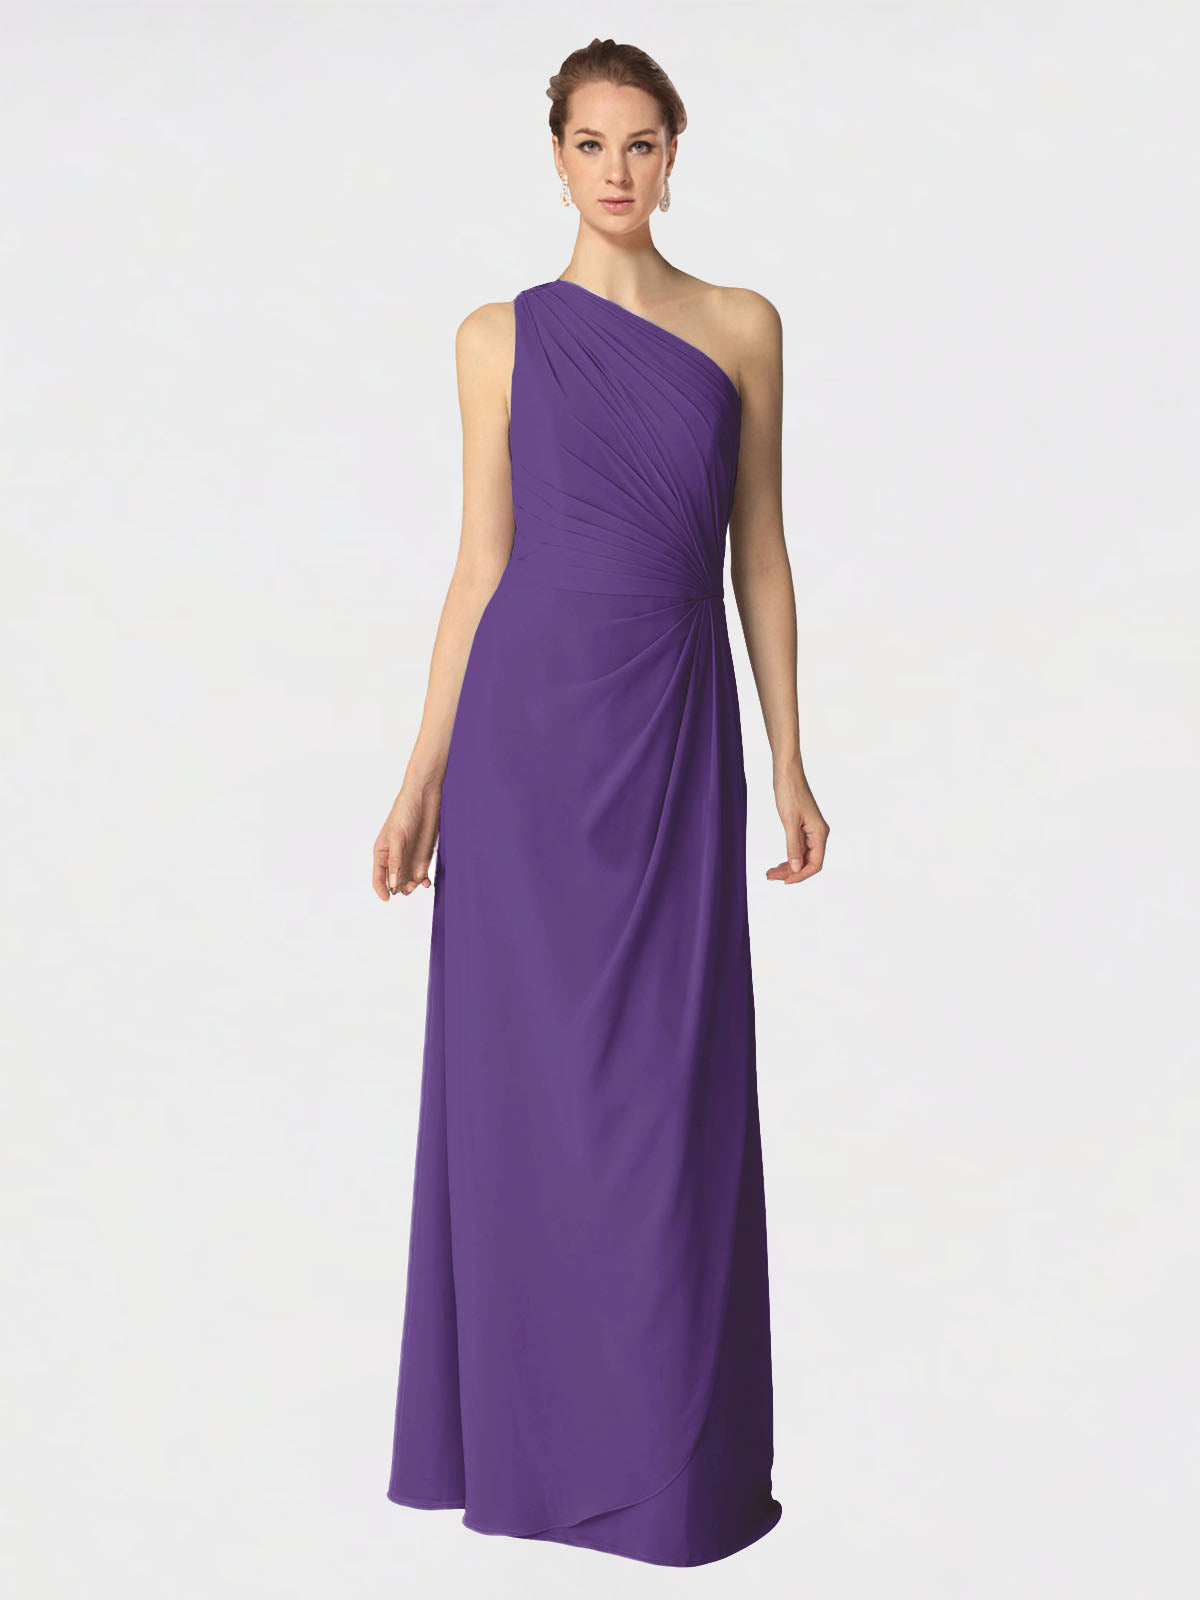 Long A-Line One Shoulder Sleeveless Plum Purple Chiffon Bridesmaid Dress Aurora